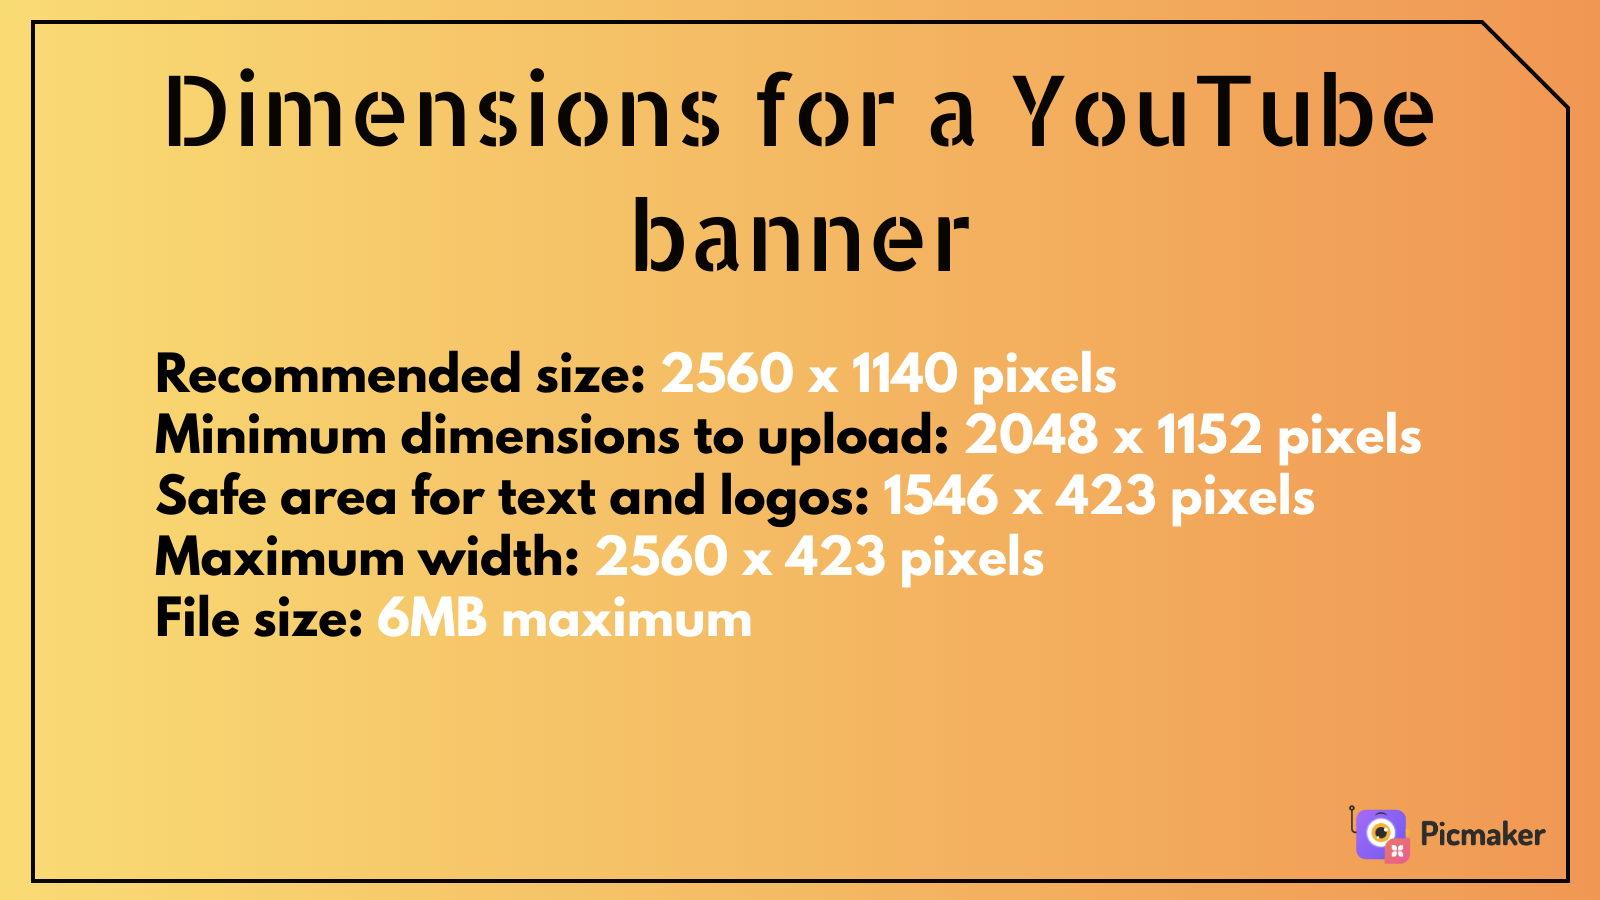 Youtube-banner-dimensions-2021